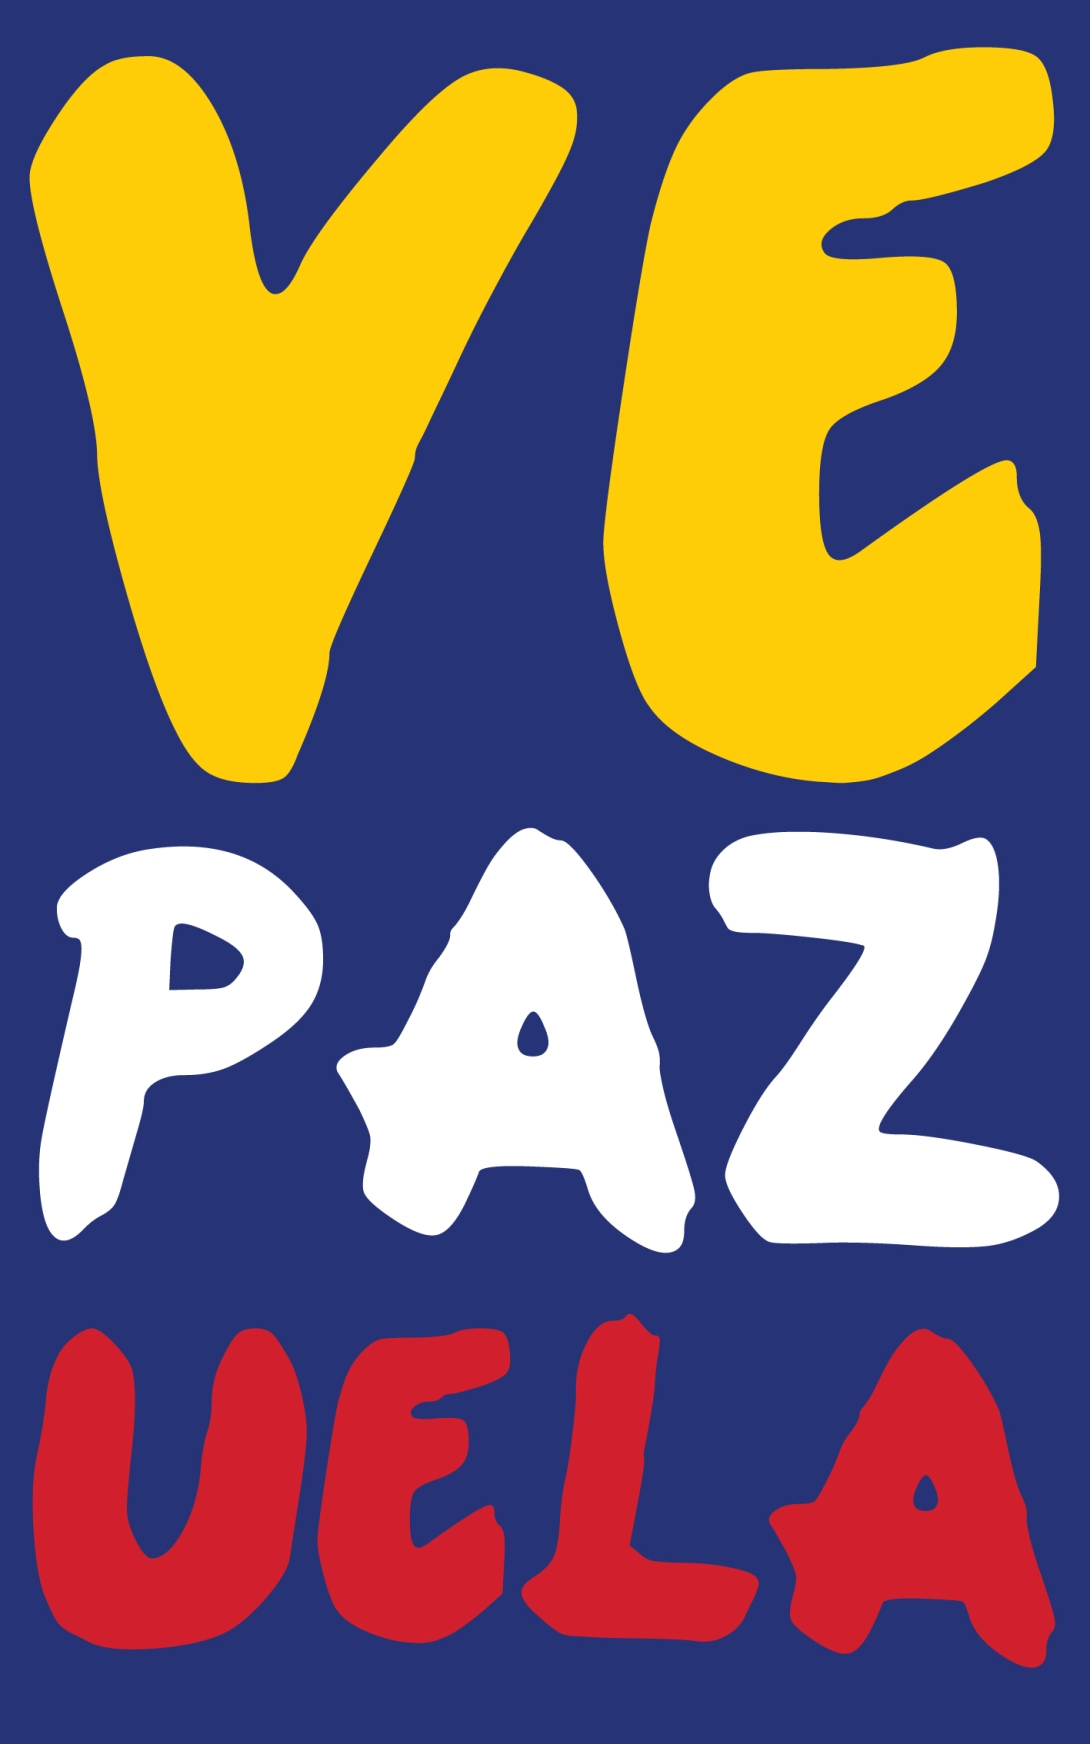 vePAZuela---Christopher-Scott